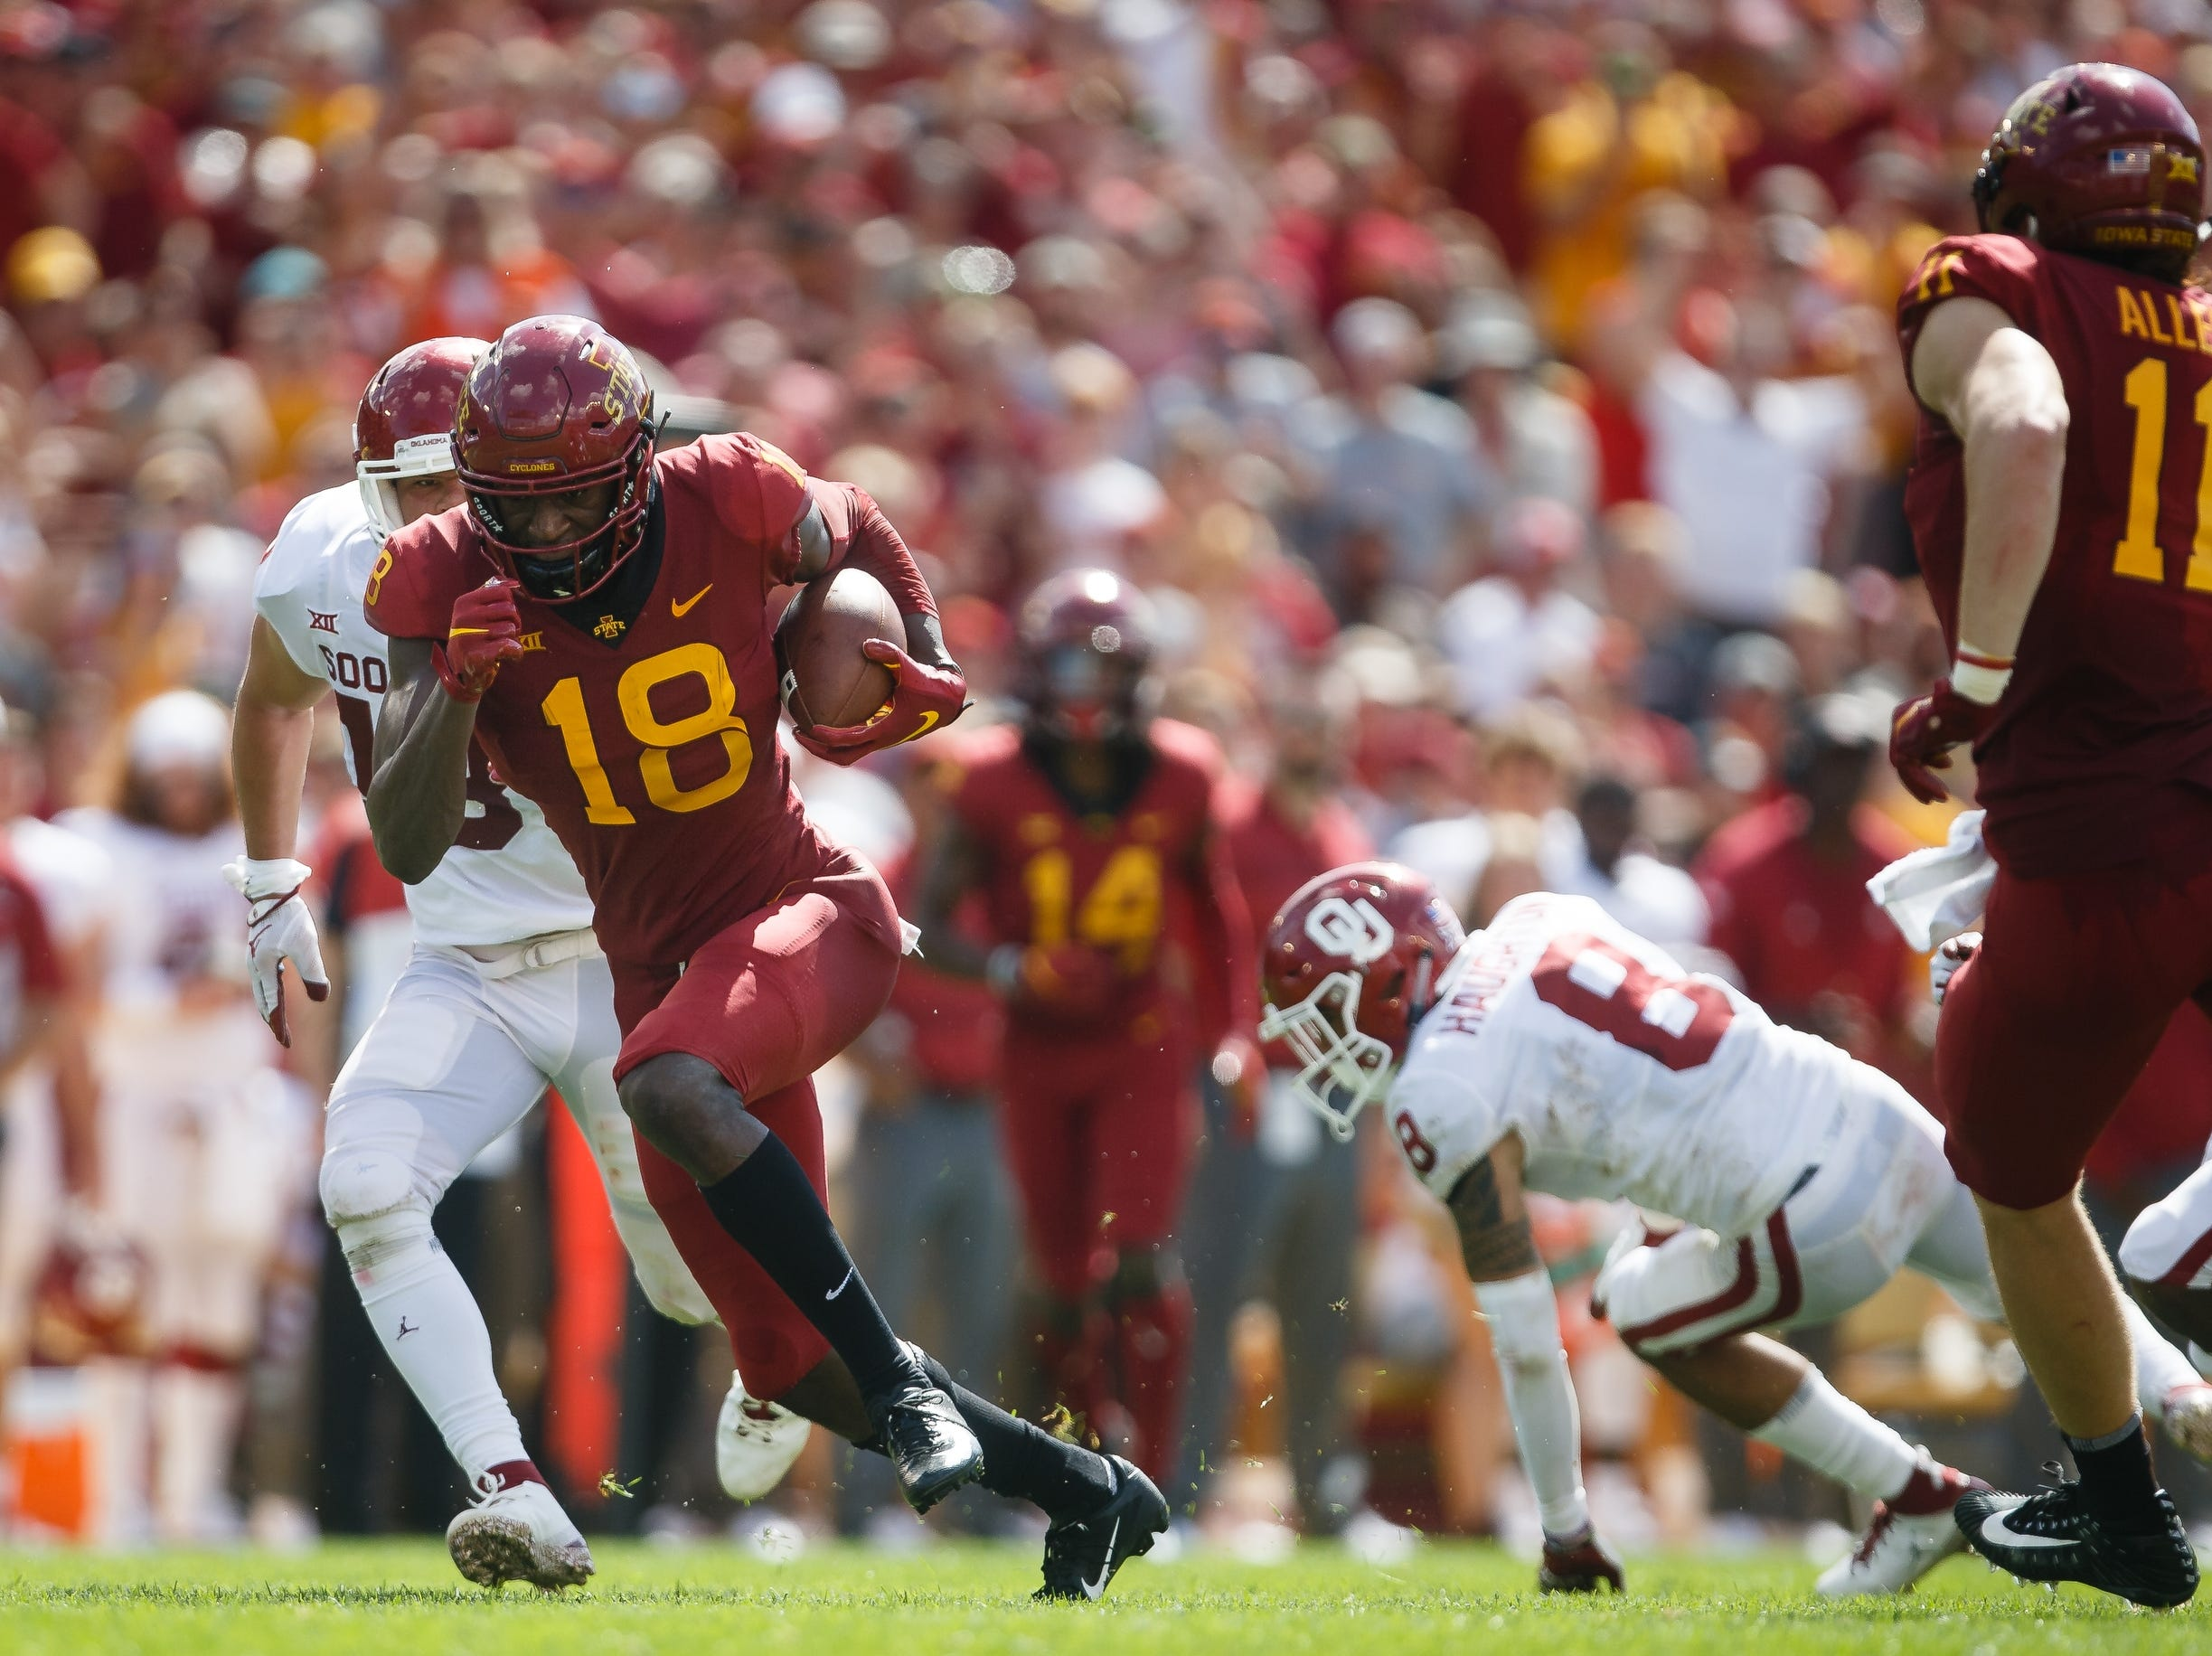 Iowa State's Hakeem Butler (18) breaks a tackle after catching a pass and runs it in for a touchdown during their football game at Jack Trice Stadium on Saturday, Sept. 15, 2018 in Ames. Oklahoma would go on to win 37-27.